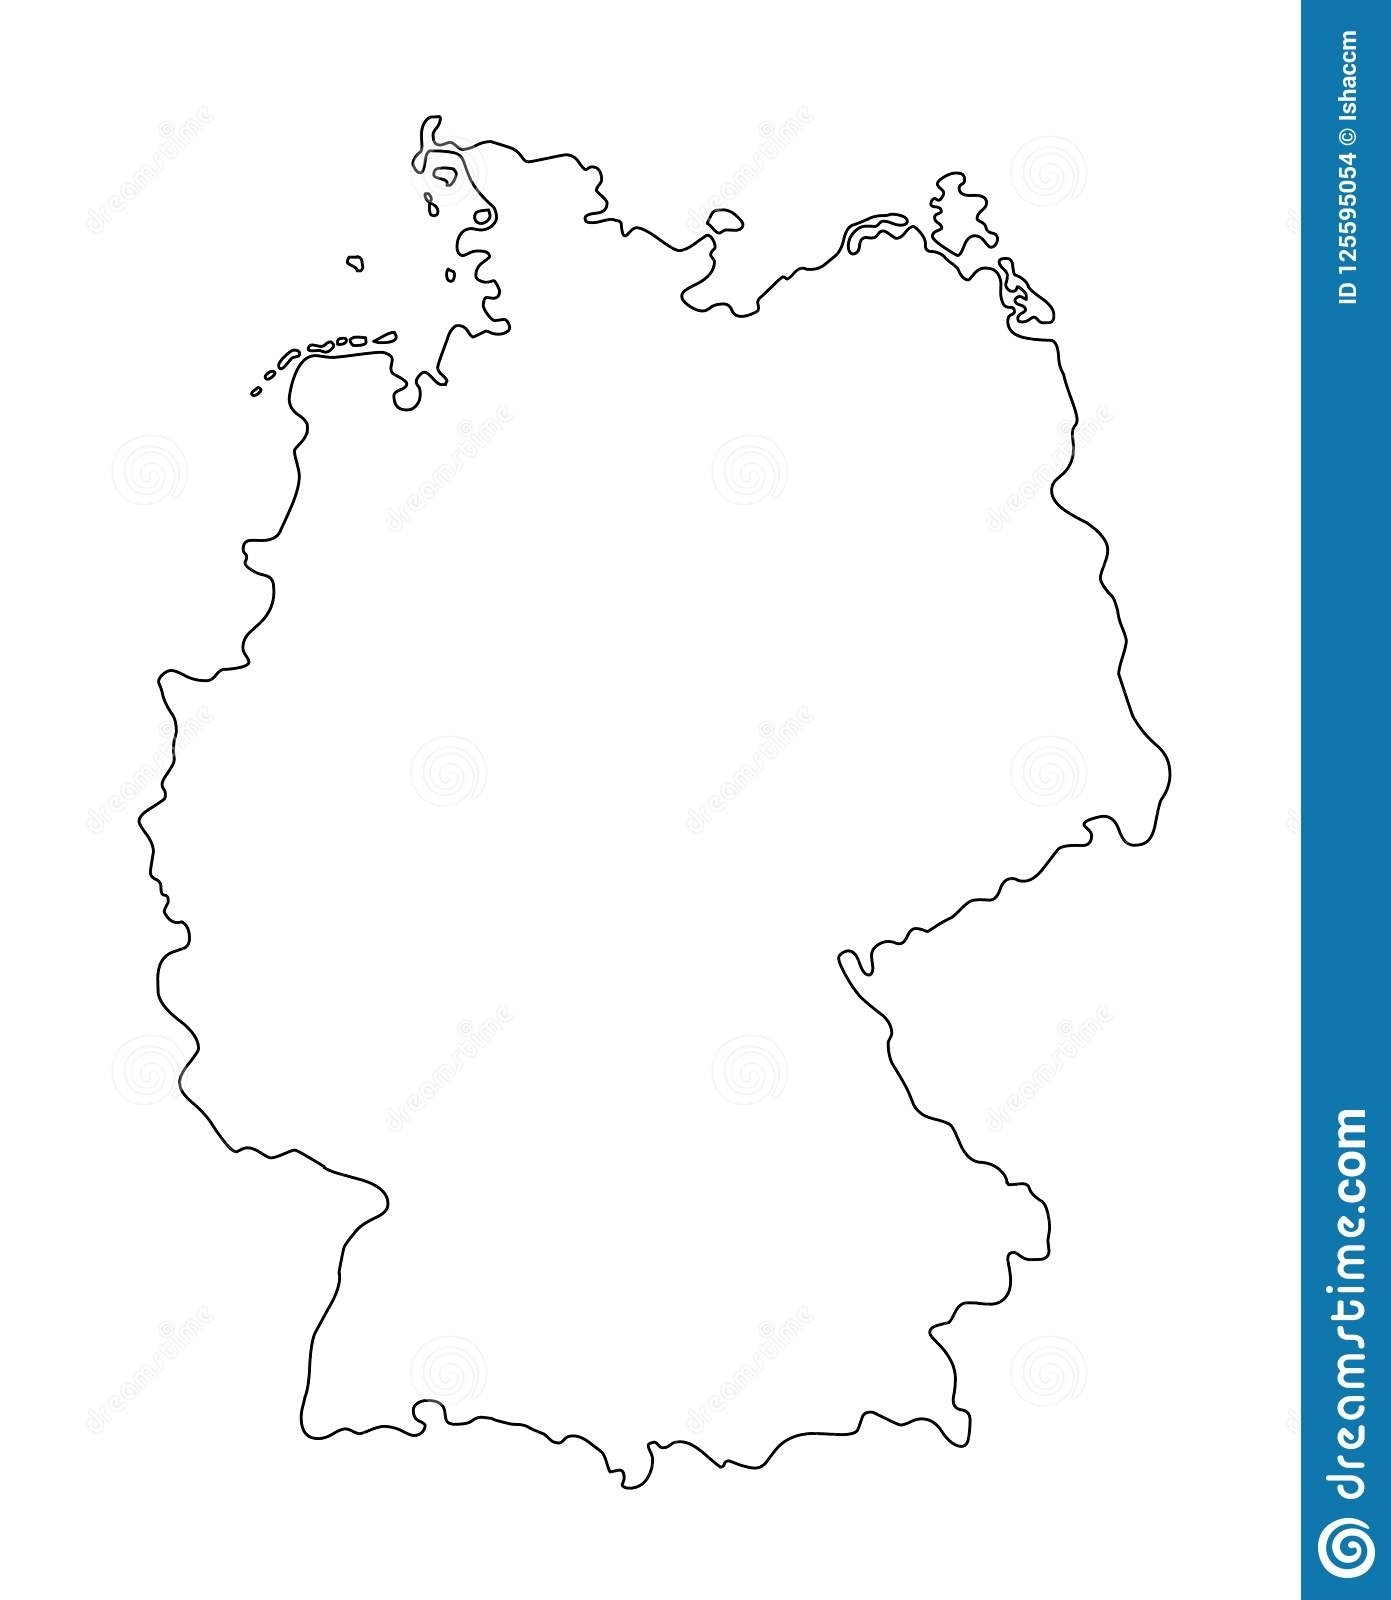 Germany Outline Map Vector Illustration Stock Vector - Illustration for Germany Map Outline